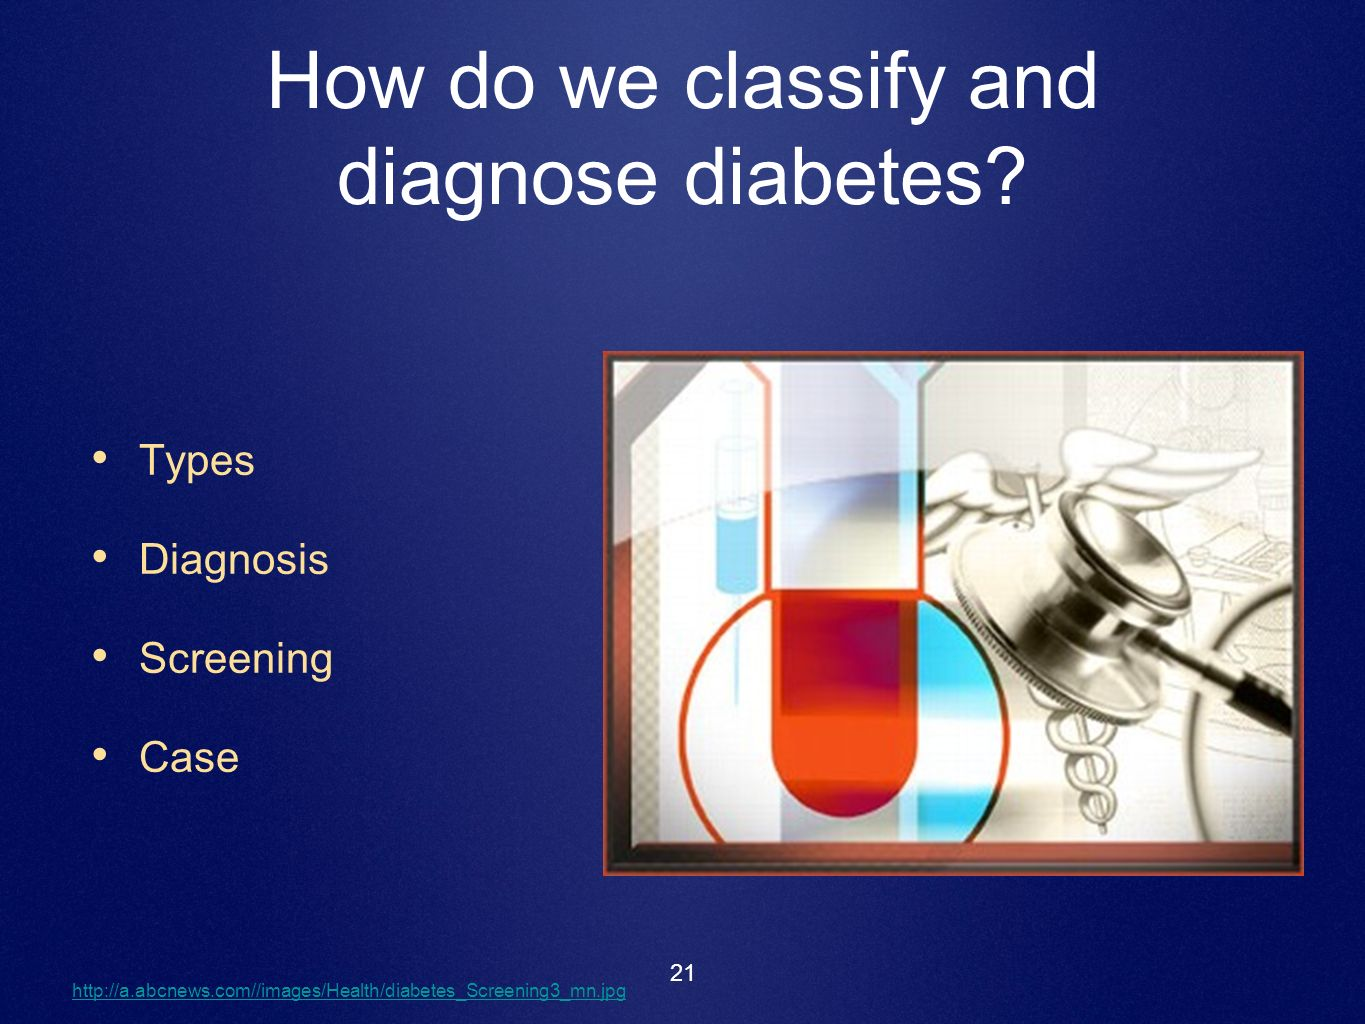 How do we classify and diagnose diabetes